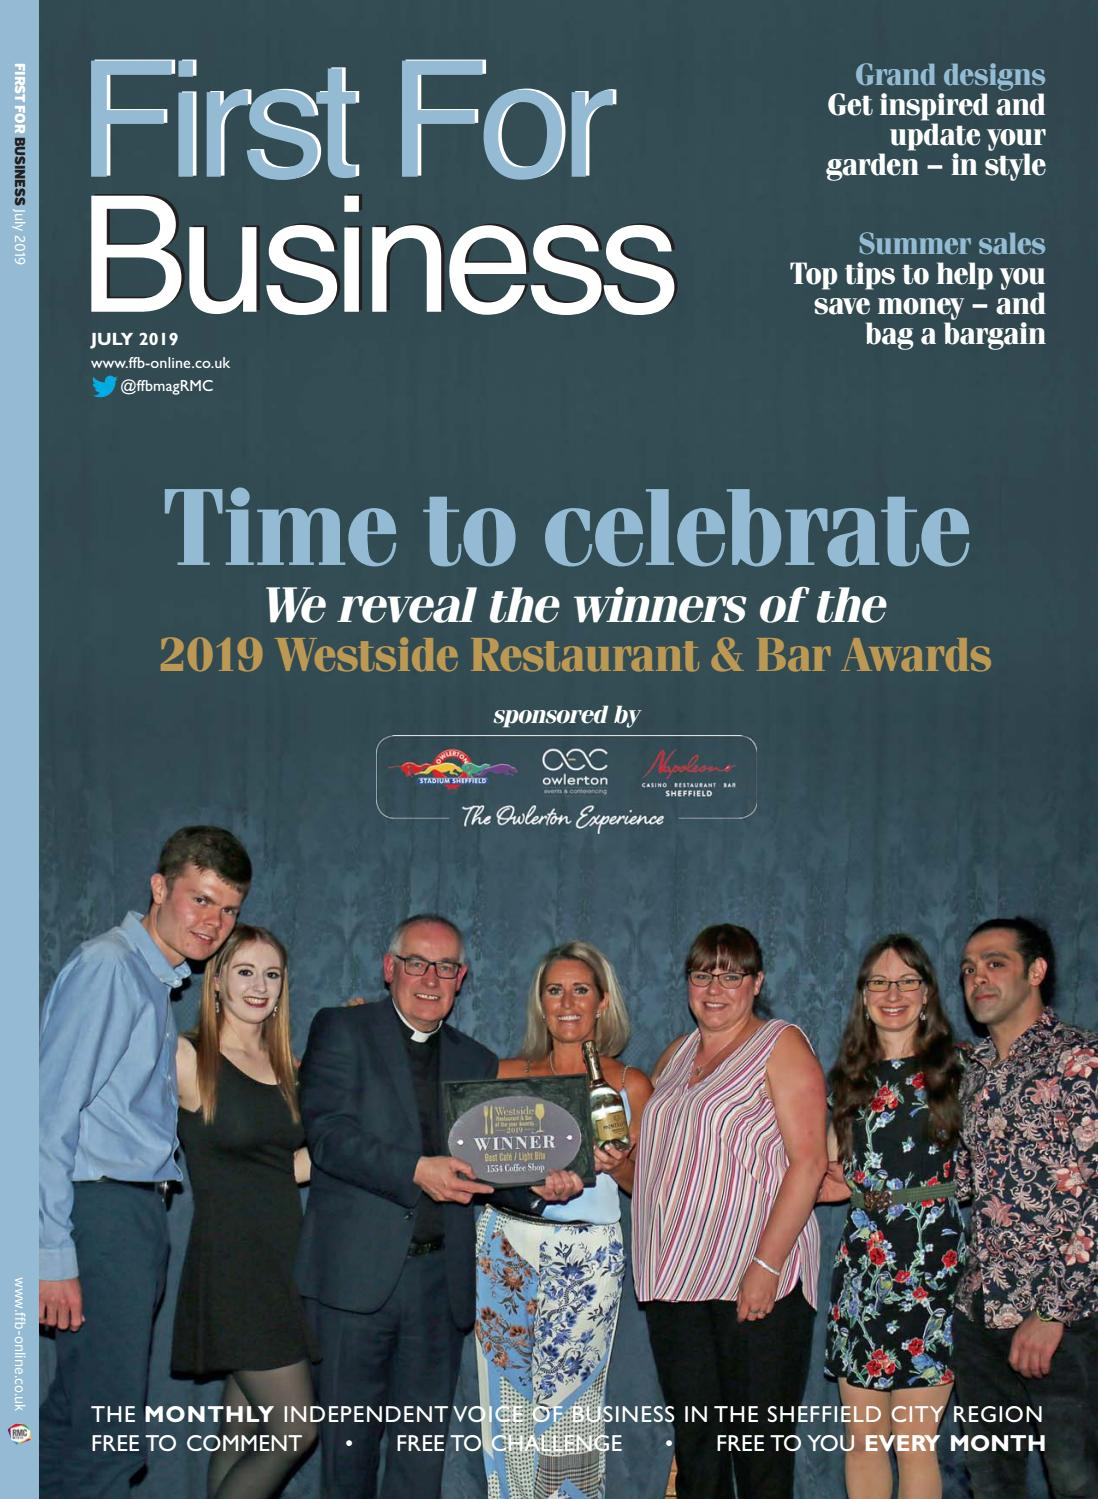 First for Business July 2019 by RMC Media - issuu